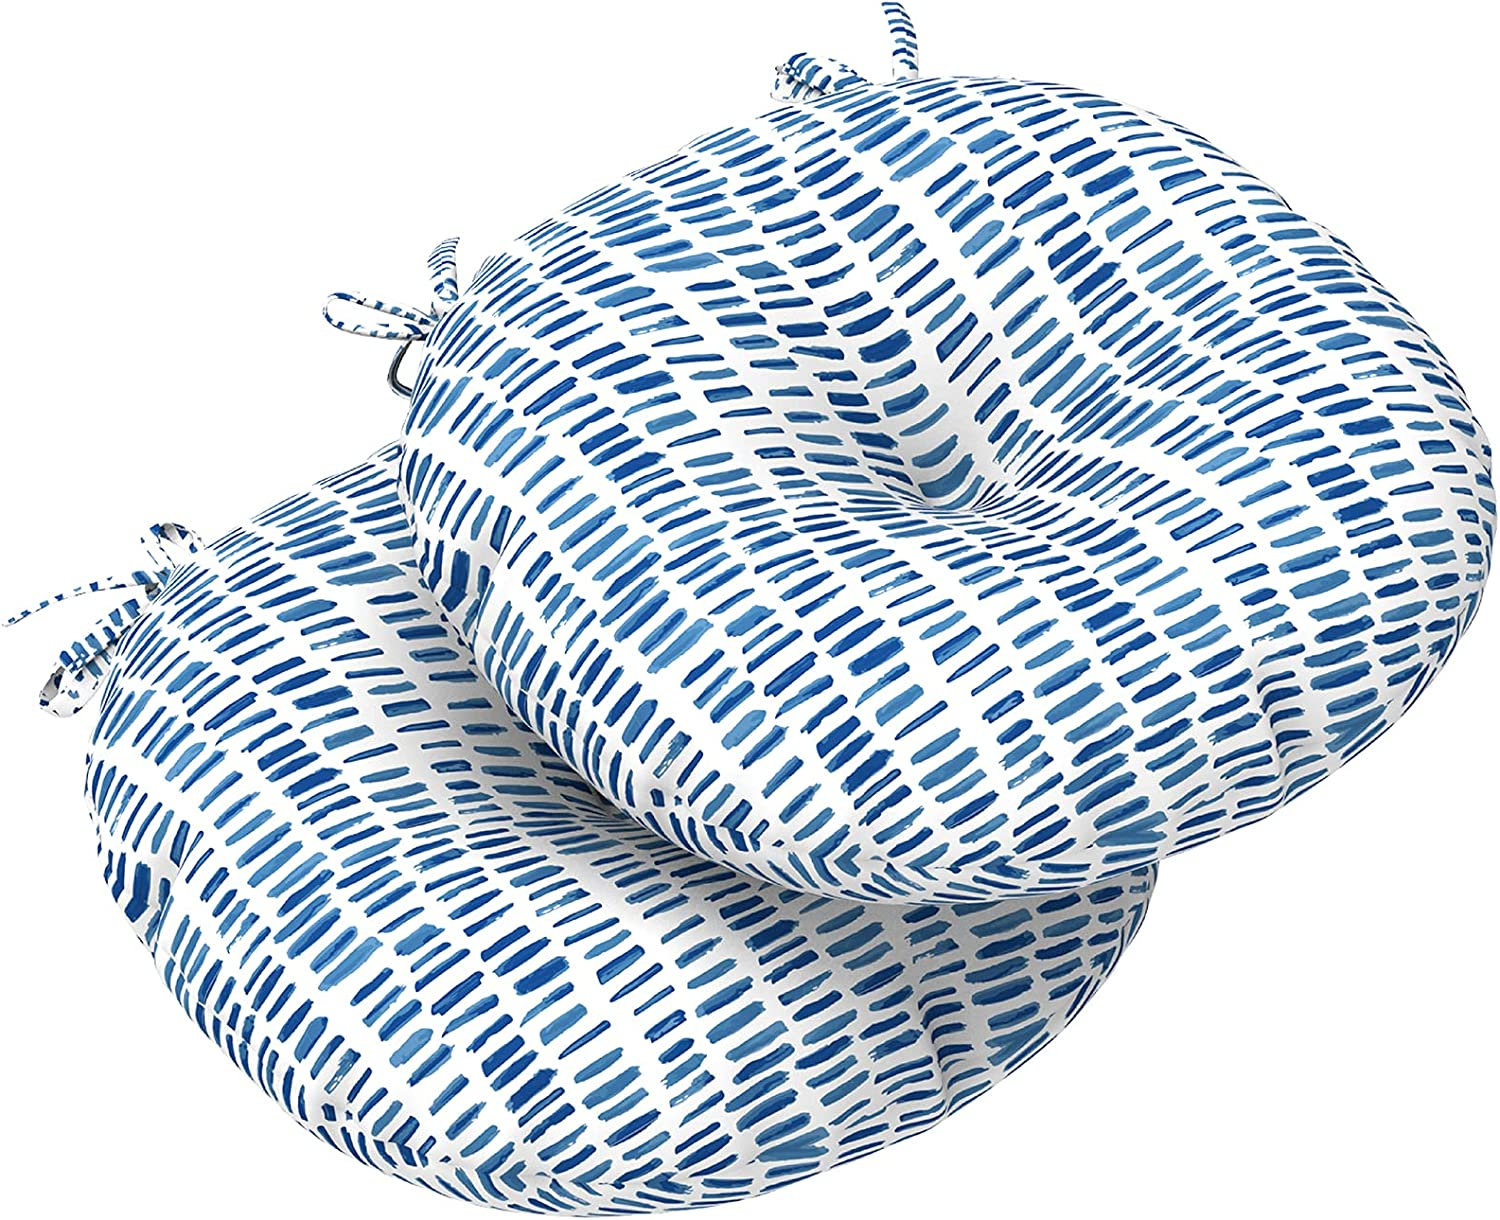 """LVTXIII Indoor/Outdoor Seat Cushions All Weather Patio Chair Pads with Ties, Comfortable Round Bistro Chair Cushions for Home Office and Garden Furniture Decoration 17""""x17""""x5"""", 2 Pack, Blue Pebble"""